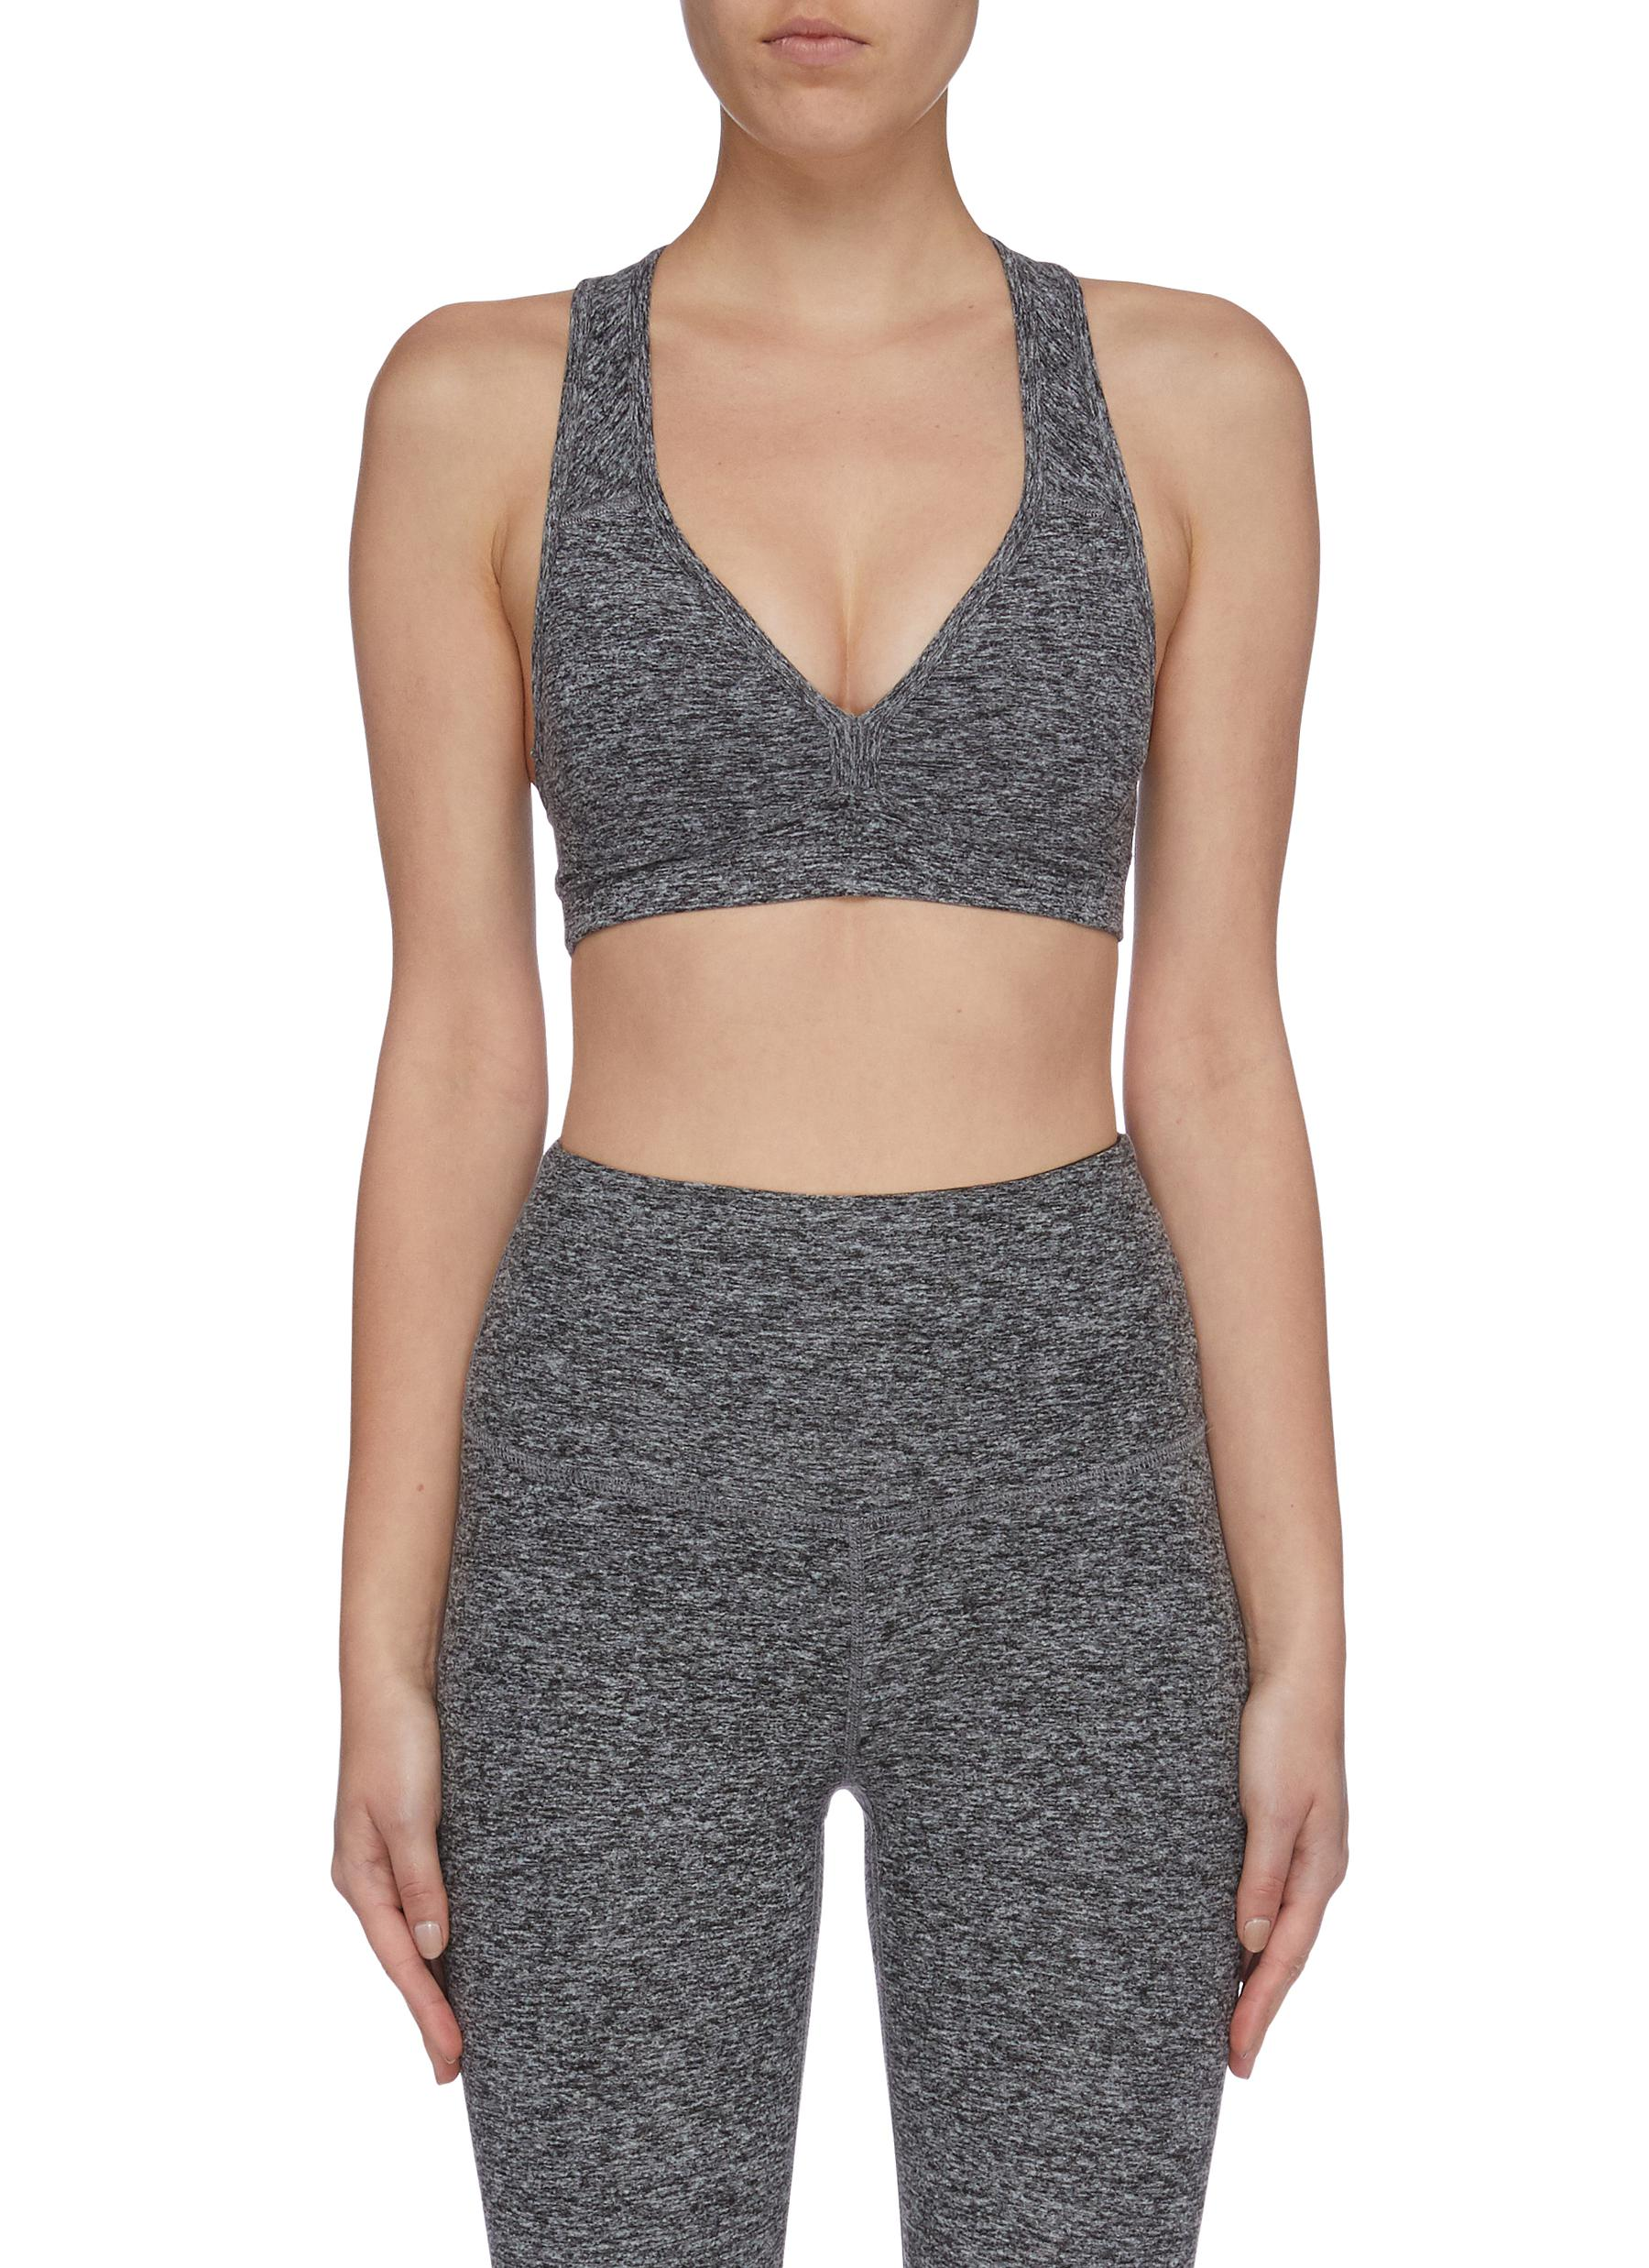 Life Your Spirits sports bra by Beyond Yoga